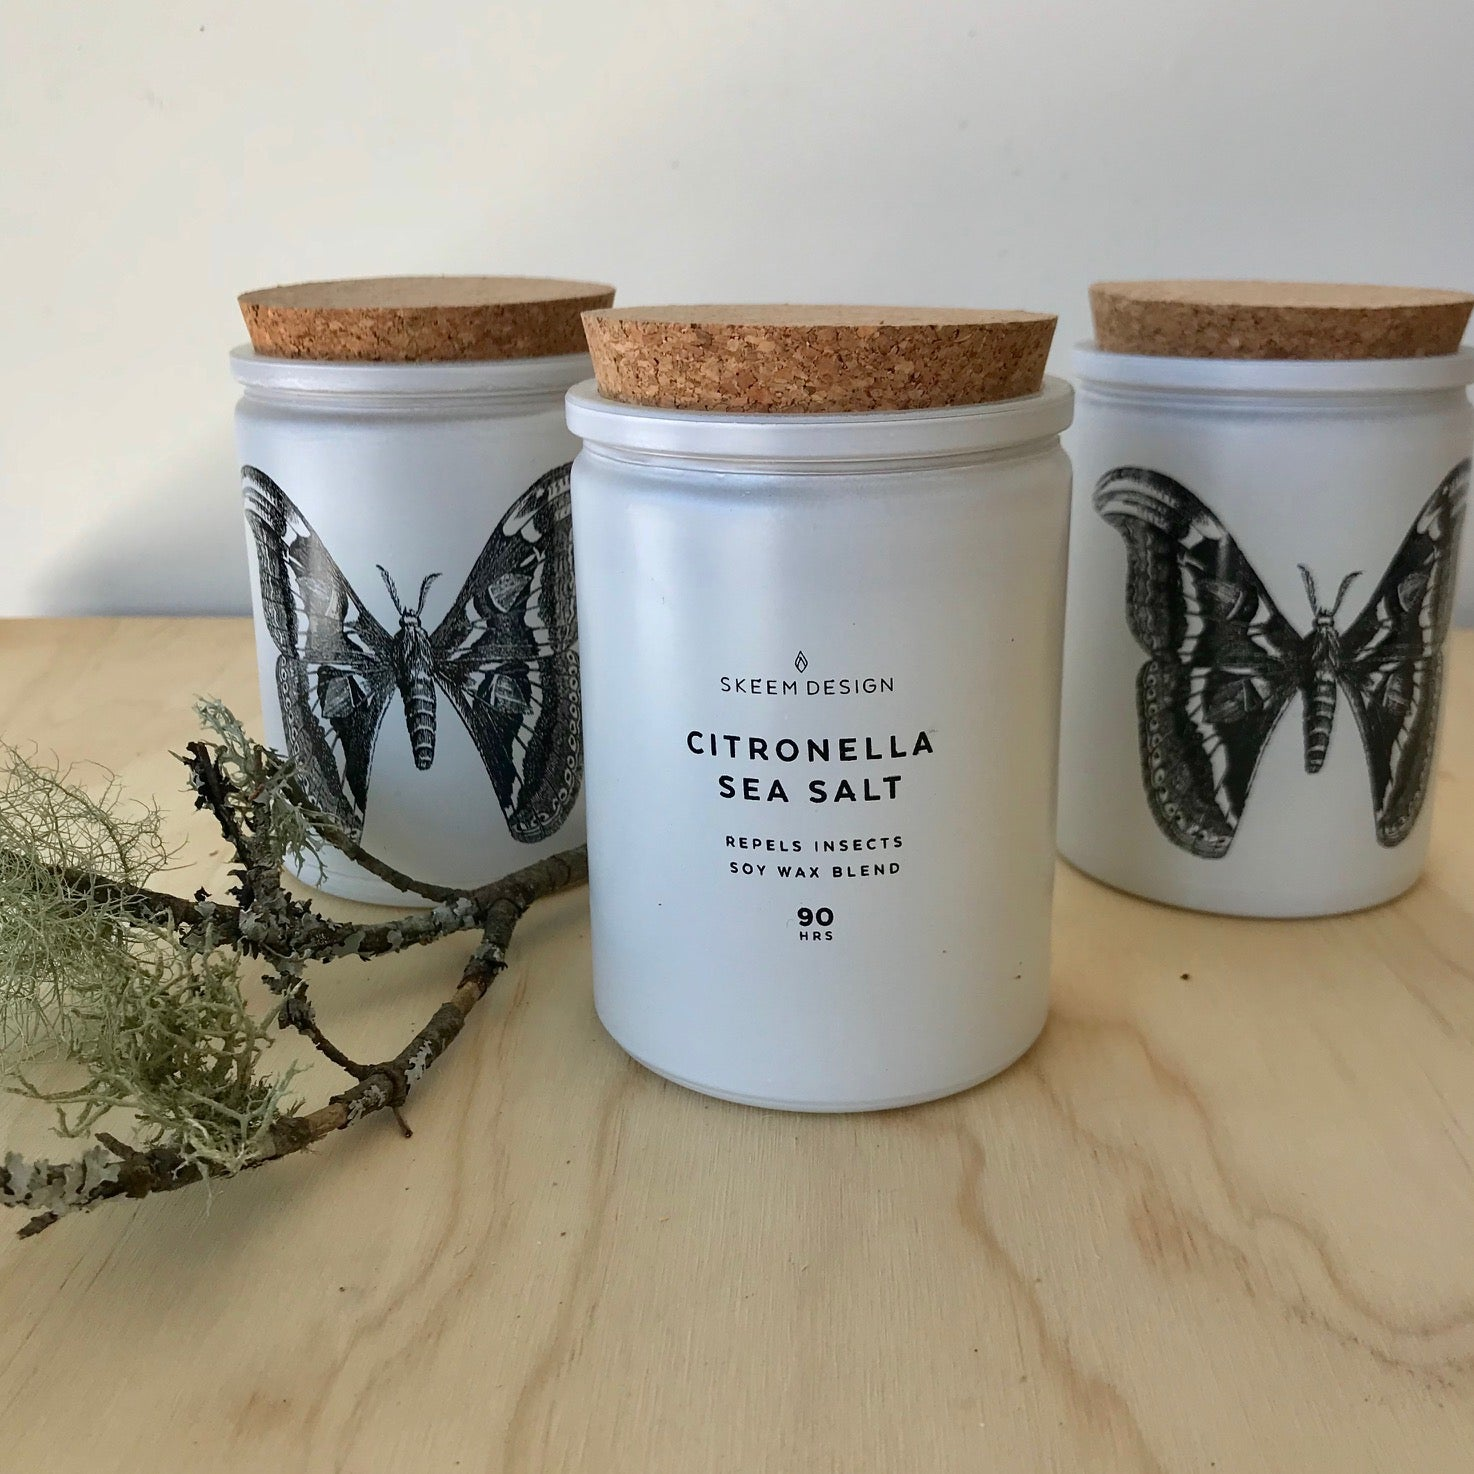 Citronella Sea Salt Upright Candle by Skeem Design - Upstate MN